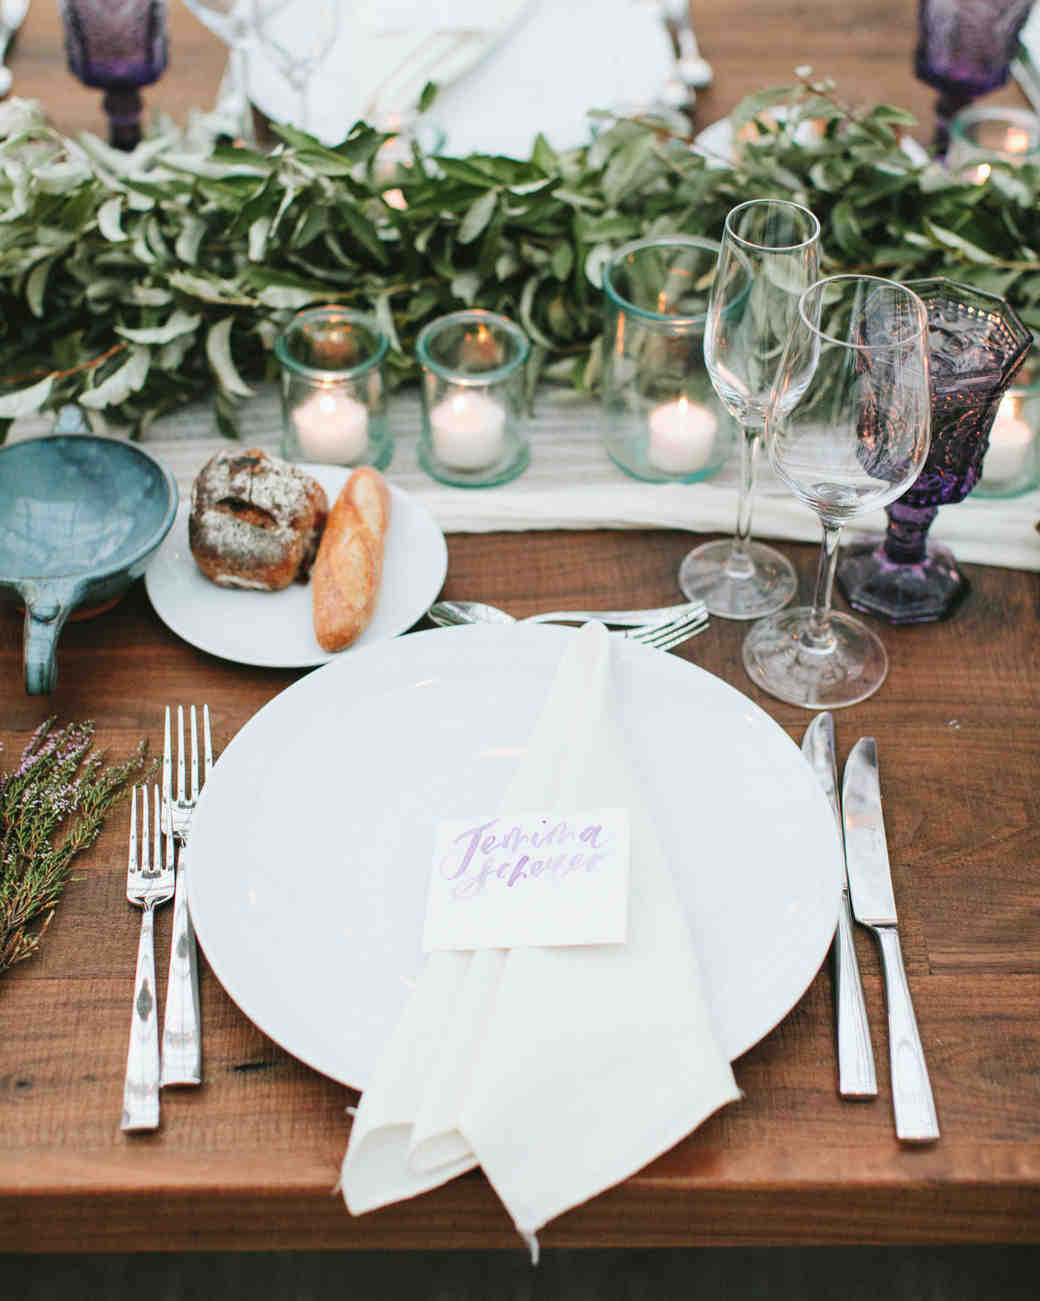 place setting with side plate of bread